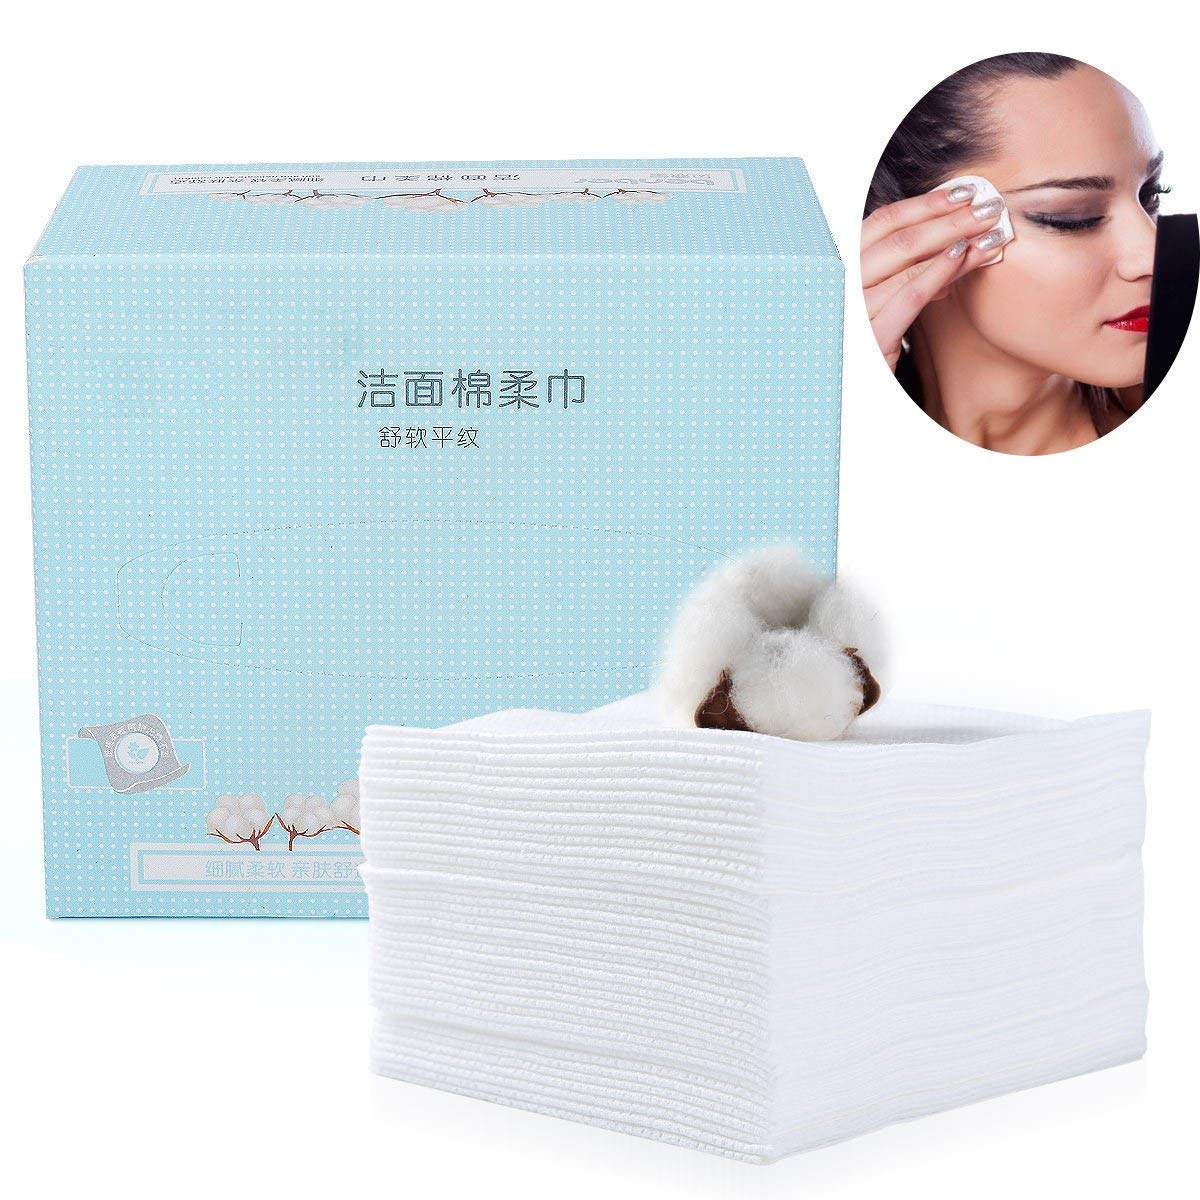 80Pcs Facial Cotton Tissue Soft Cotton Towel, Absorbent Cotton Pad Large (120 mm x 185 mm) for Face Eye Makeup Remover and Nail Polish,Wet/Dry Use Cleaning Face Wipes